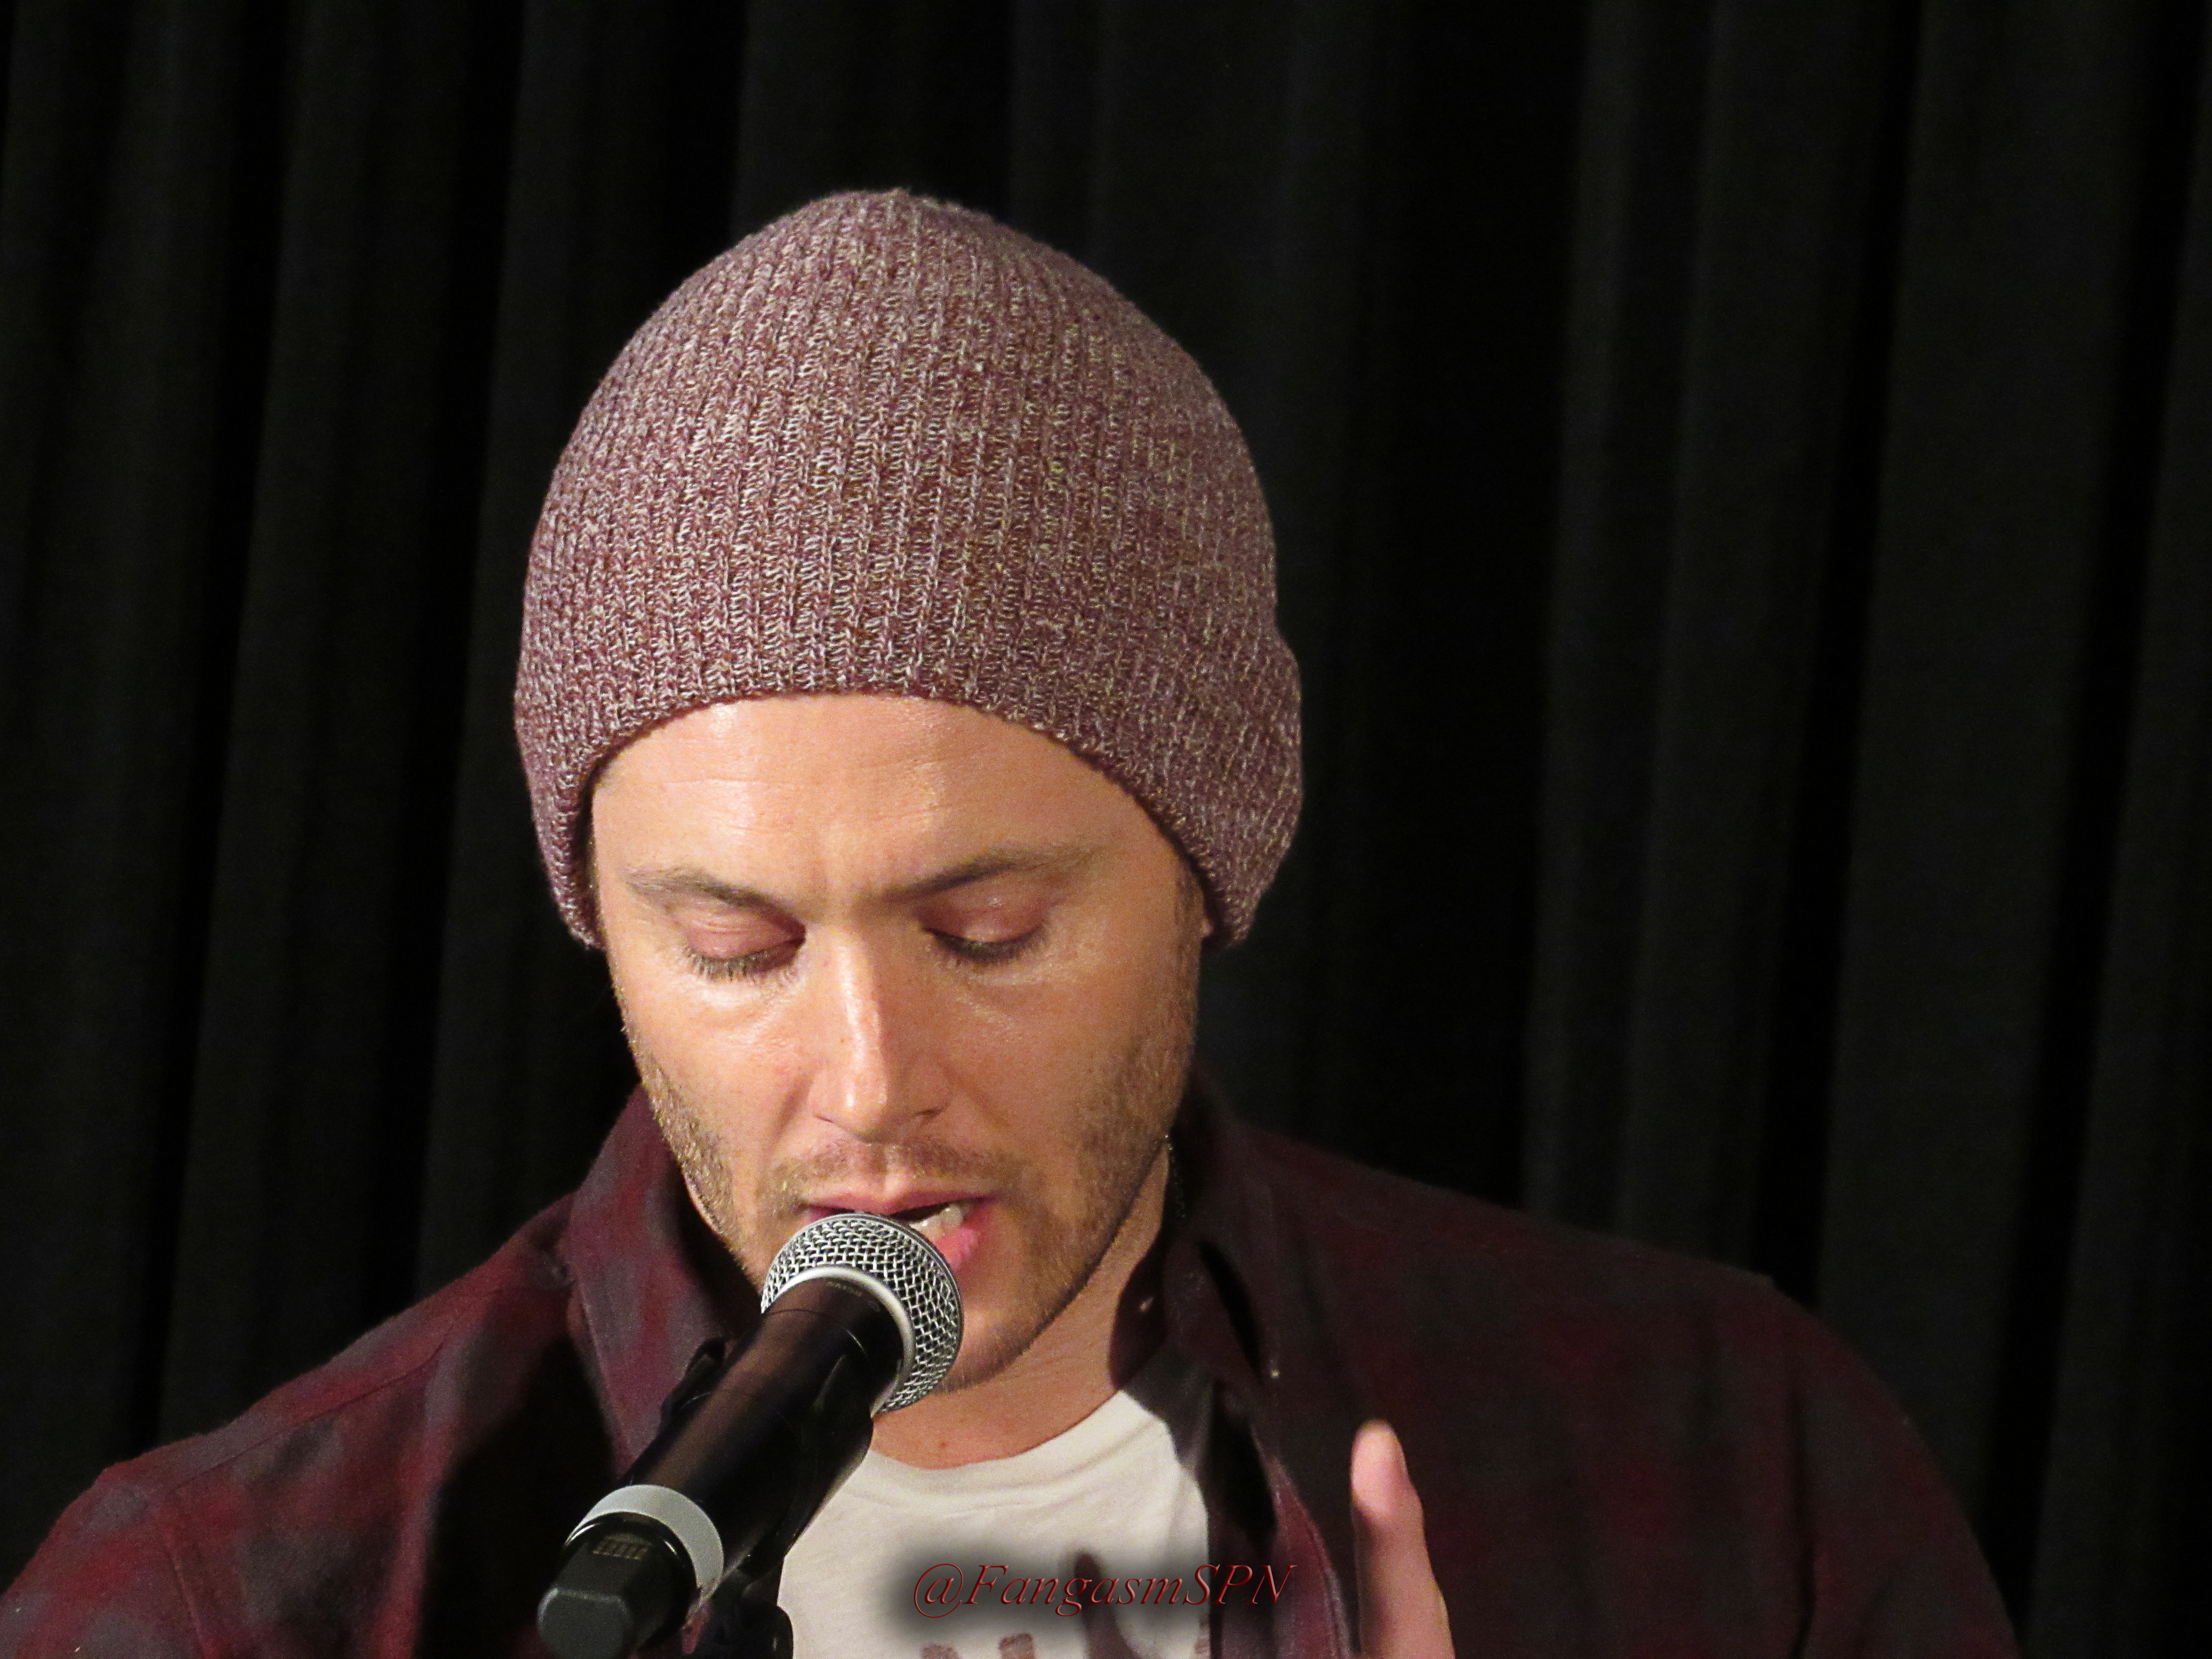 Meet and greet tidbits from chicon jensen ackles on directing meet and greet with jensen chicon15317wm kristyandbryce Images